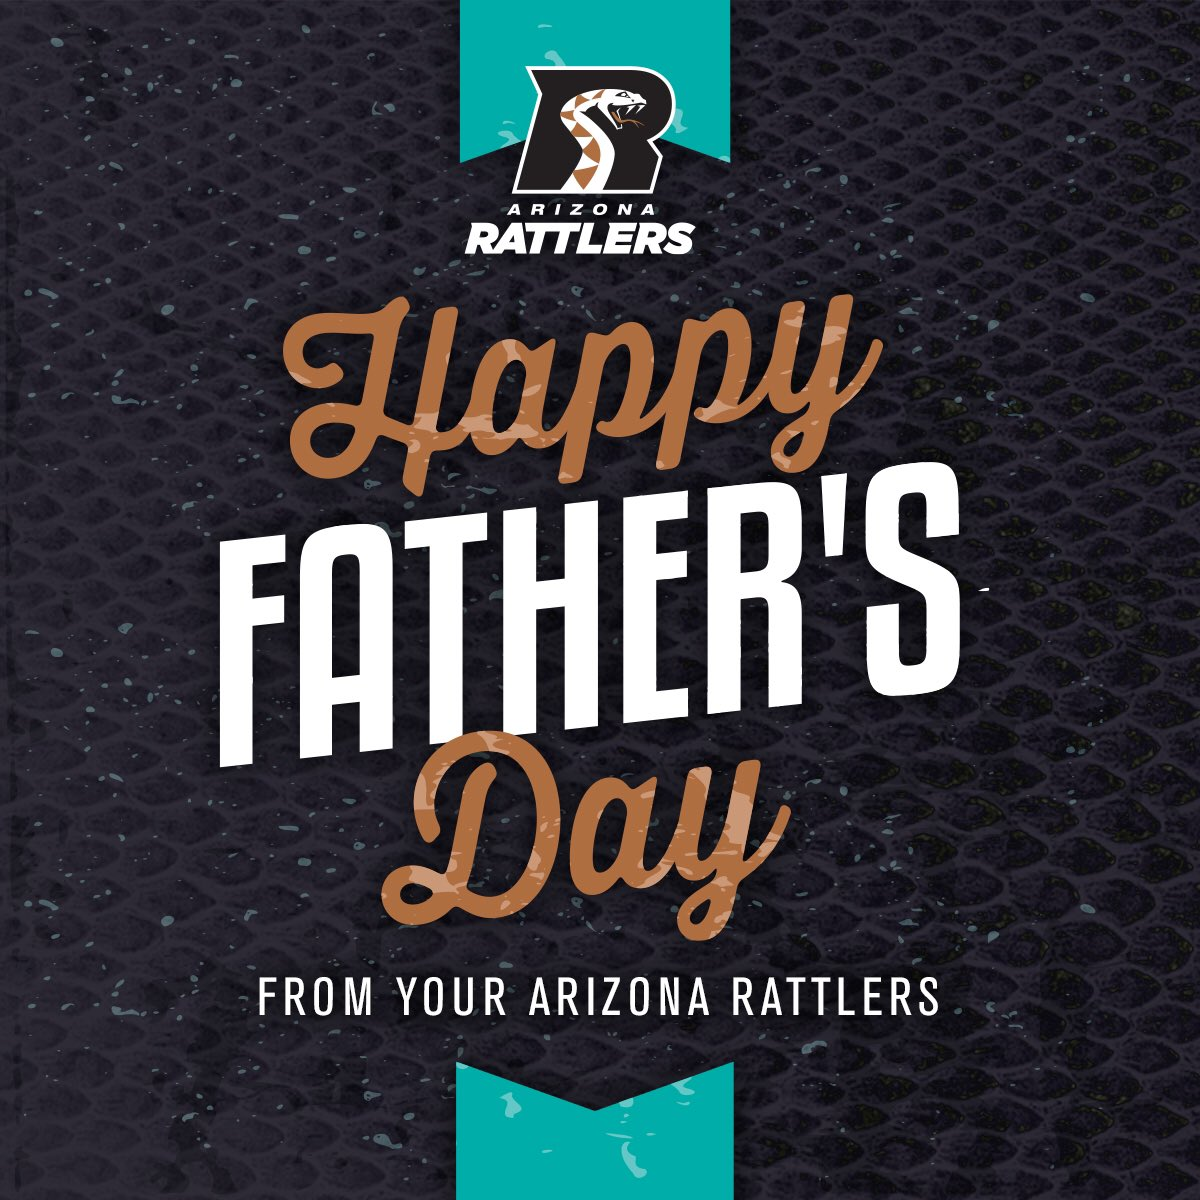 #HappyFathersDay to all the dads in #RattlerNation https://t.co/YHuCRVeWhk